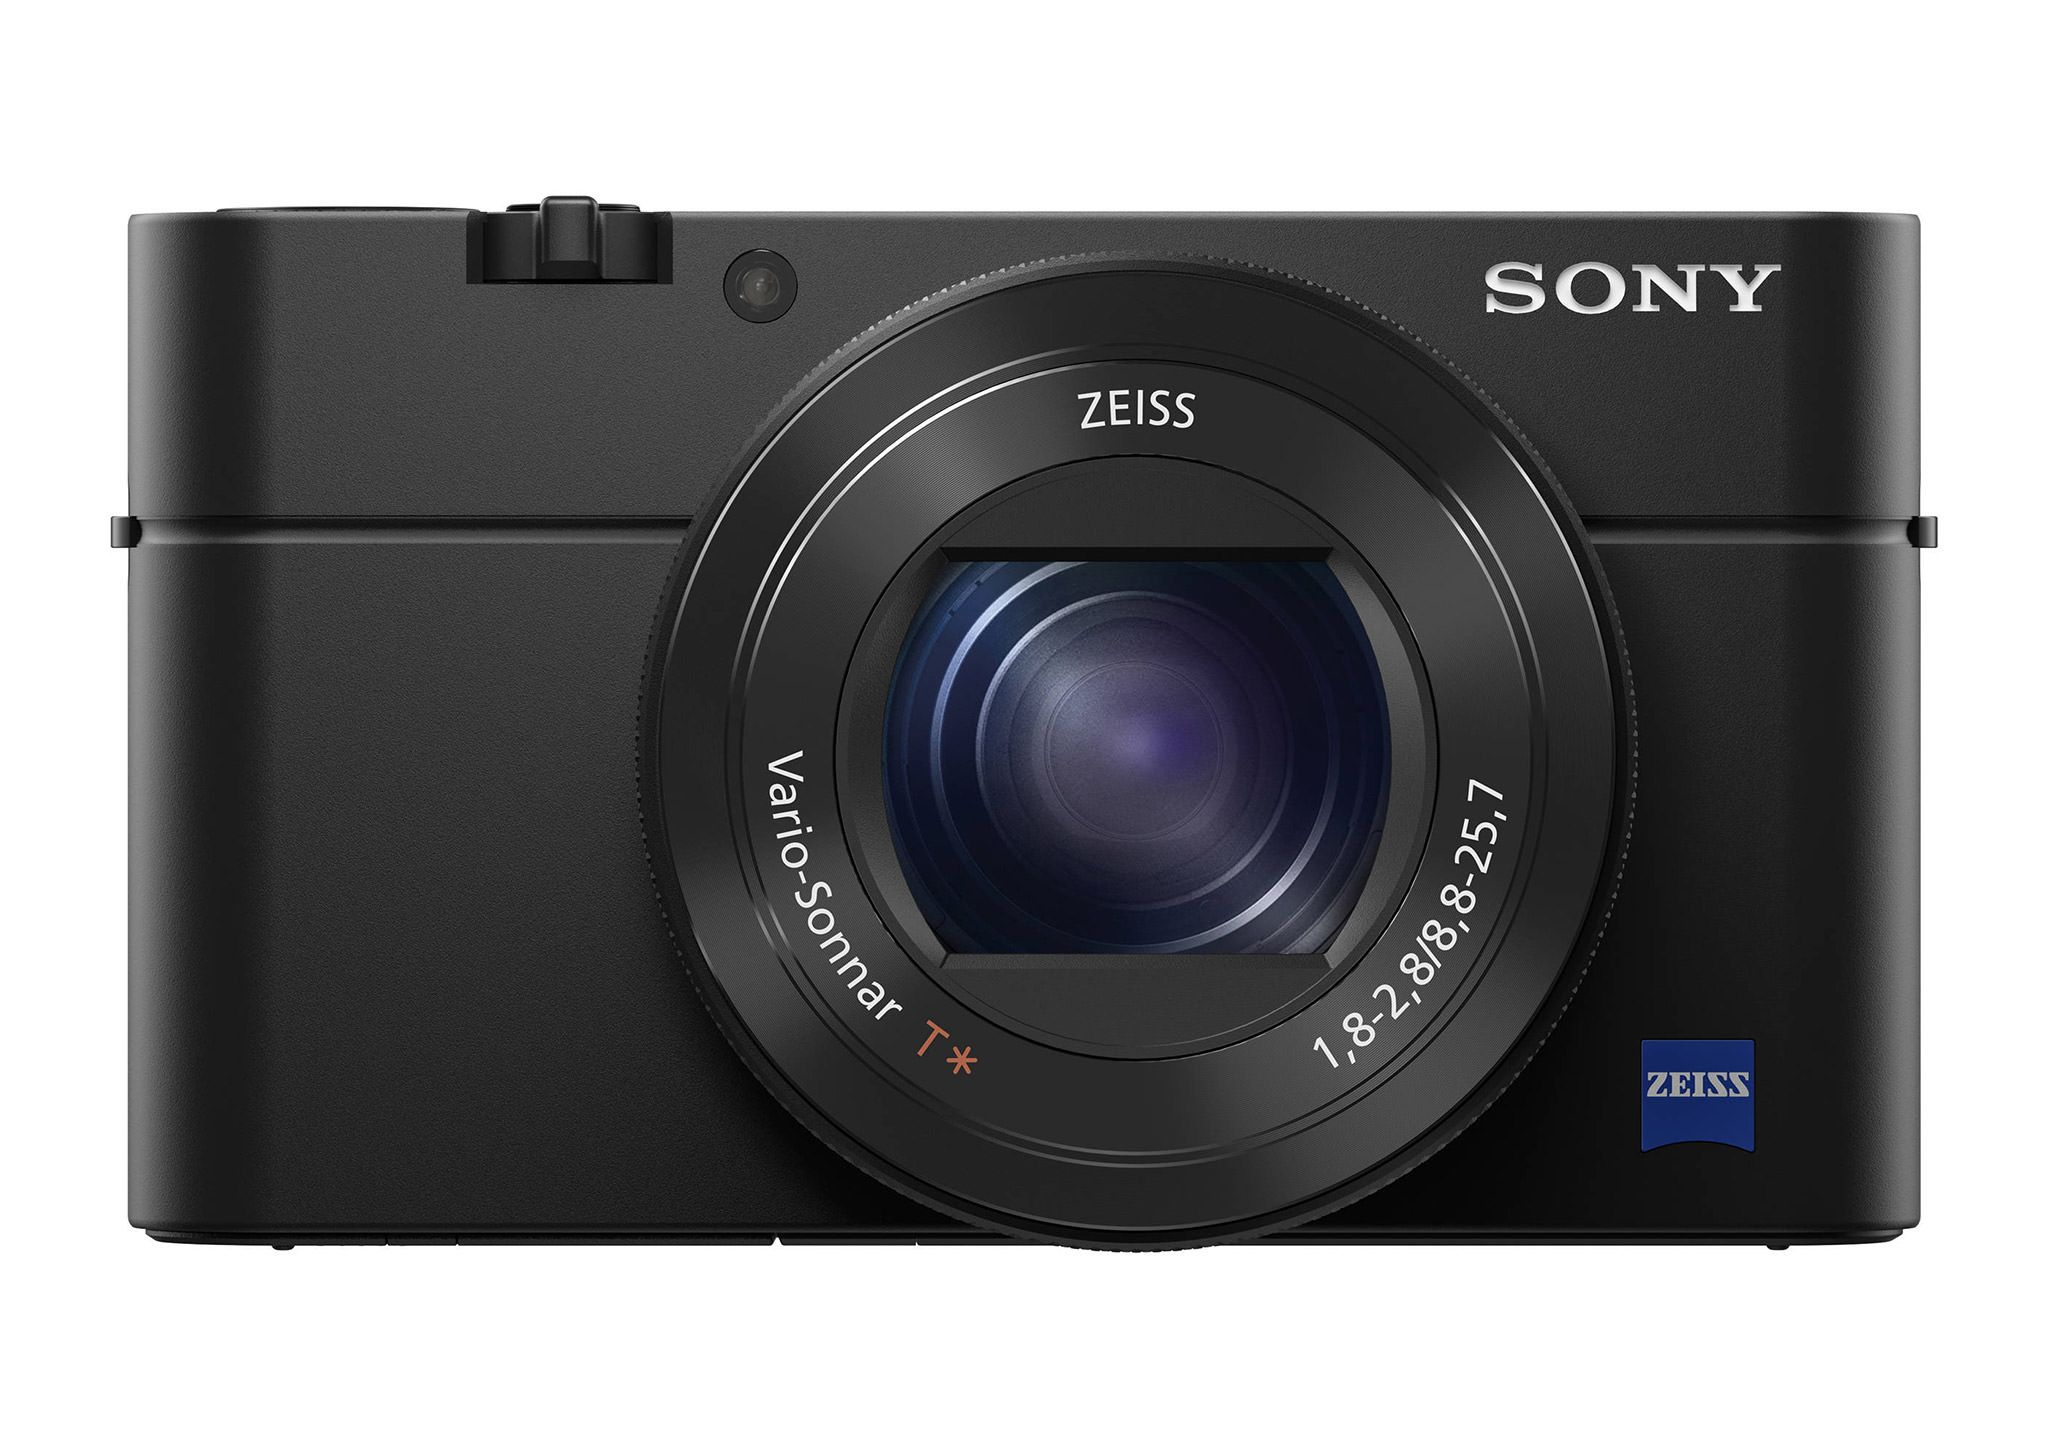 2590a2cd2ff93 Since the original release of the Sony RX100 back in 2012